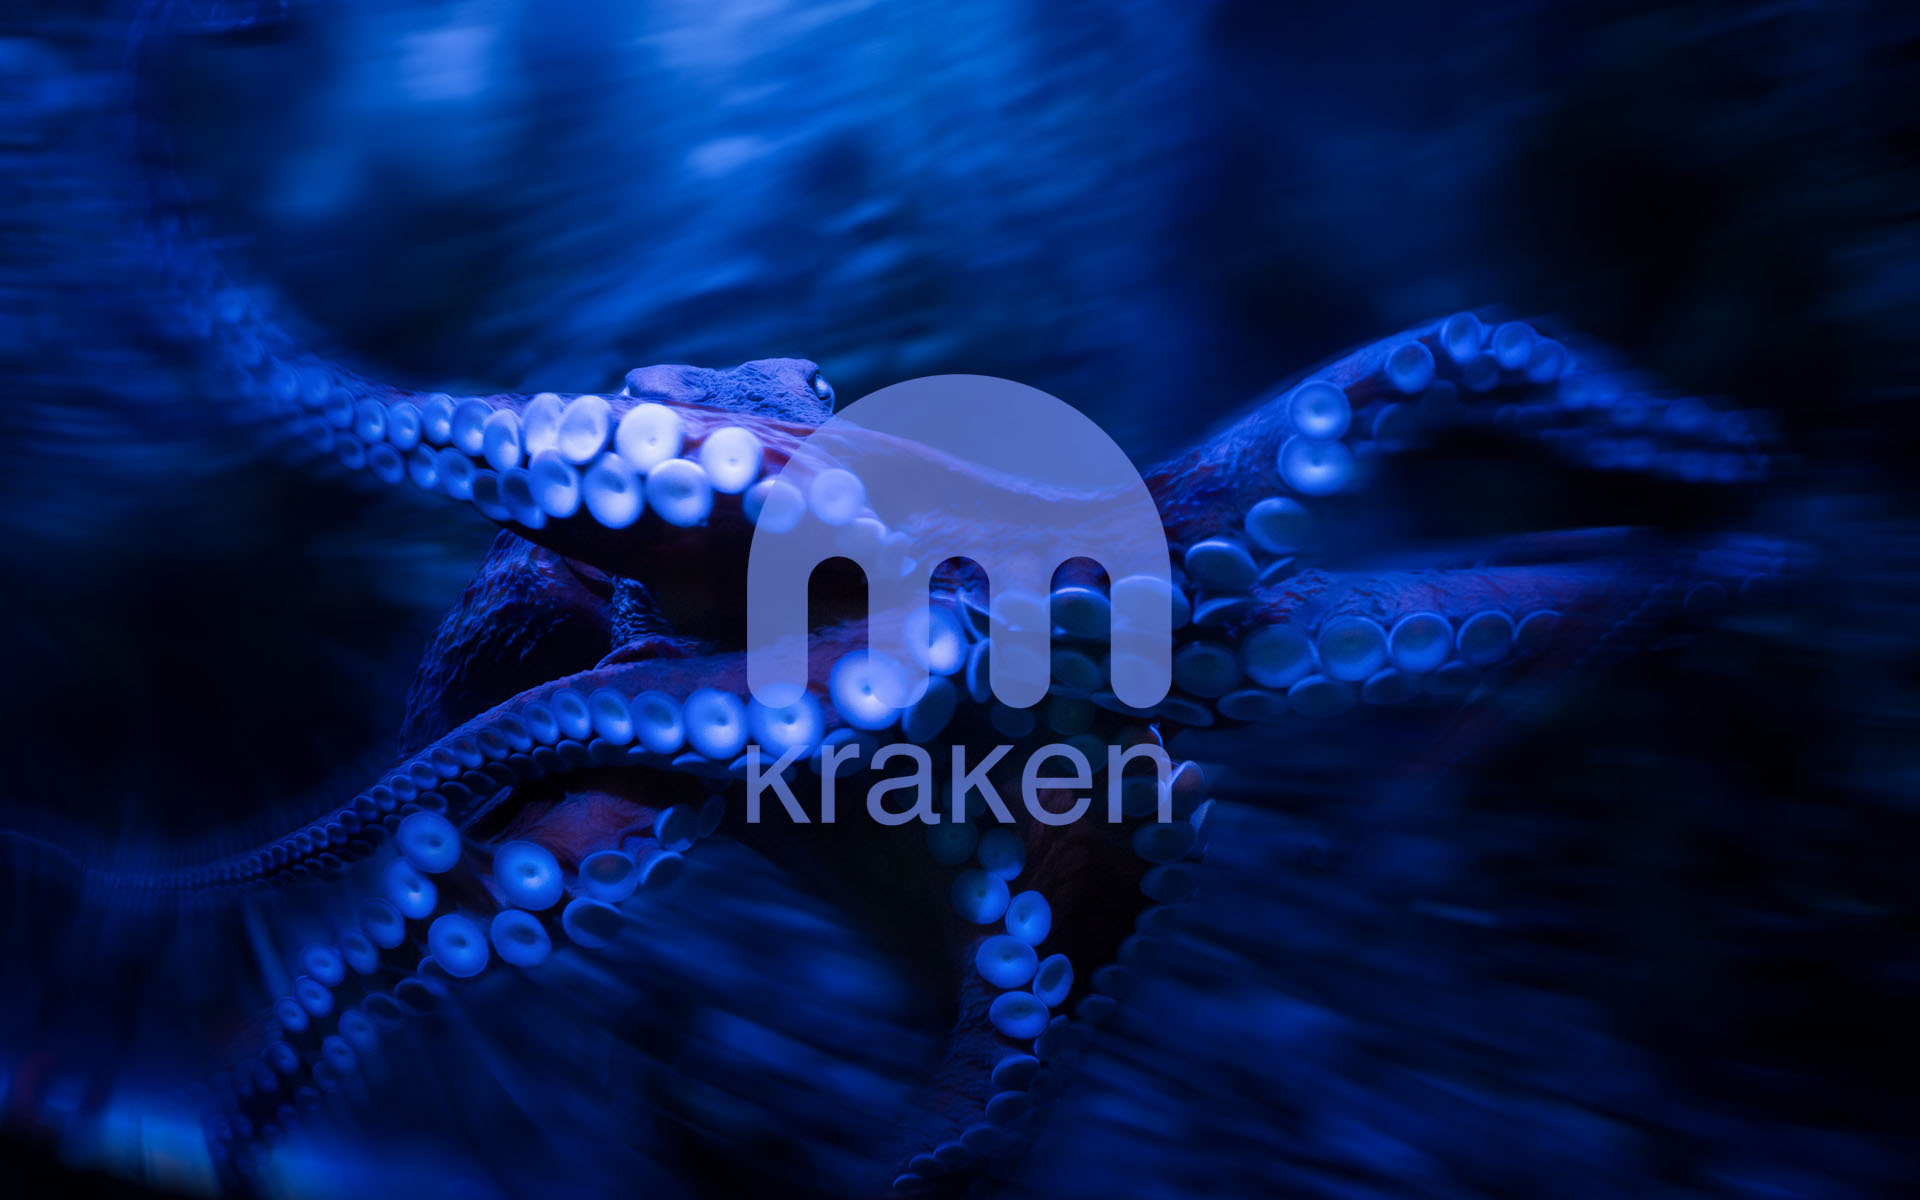 Kraken Reduces Fees Amidst Community Backlash